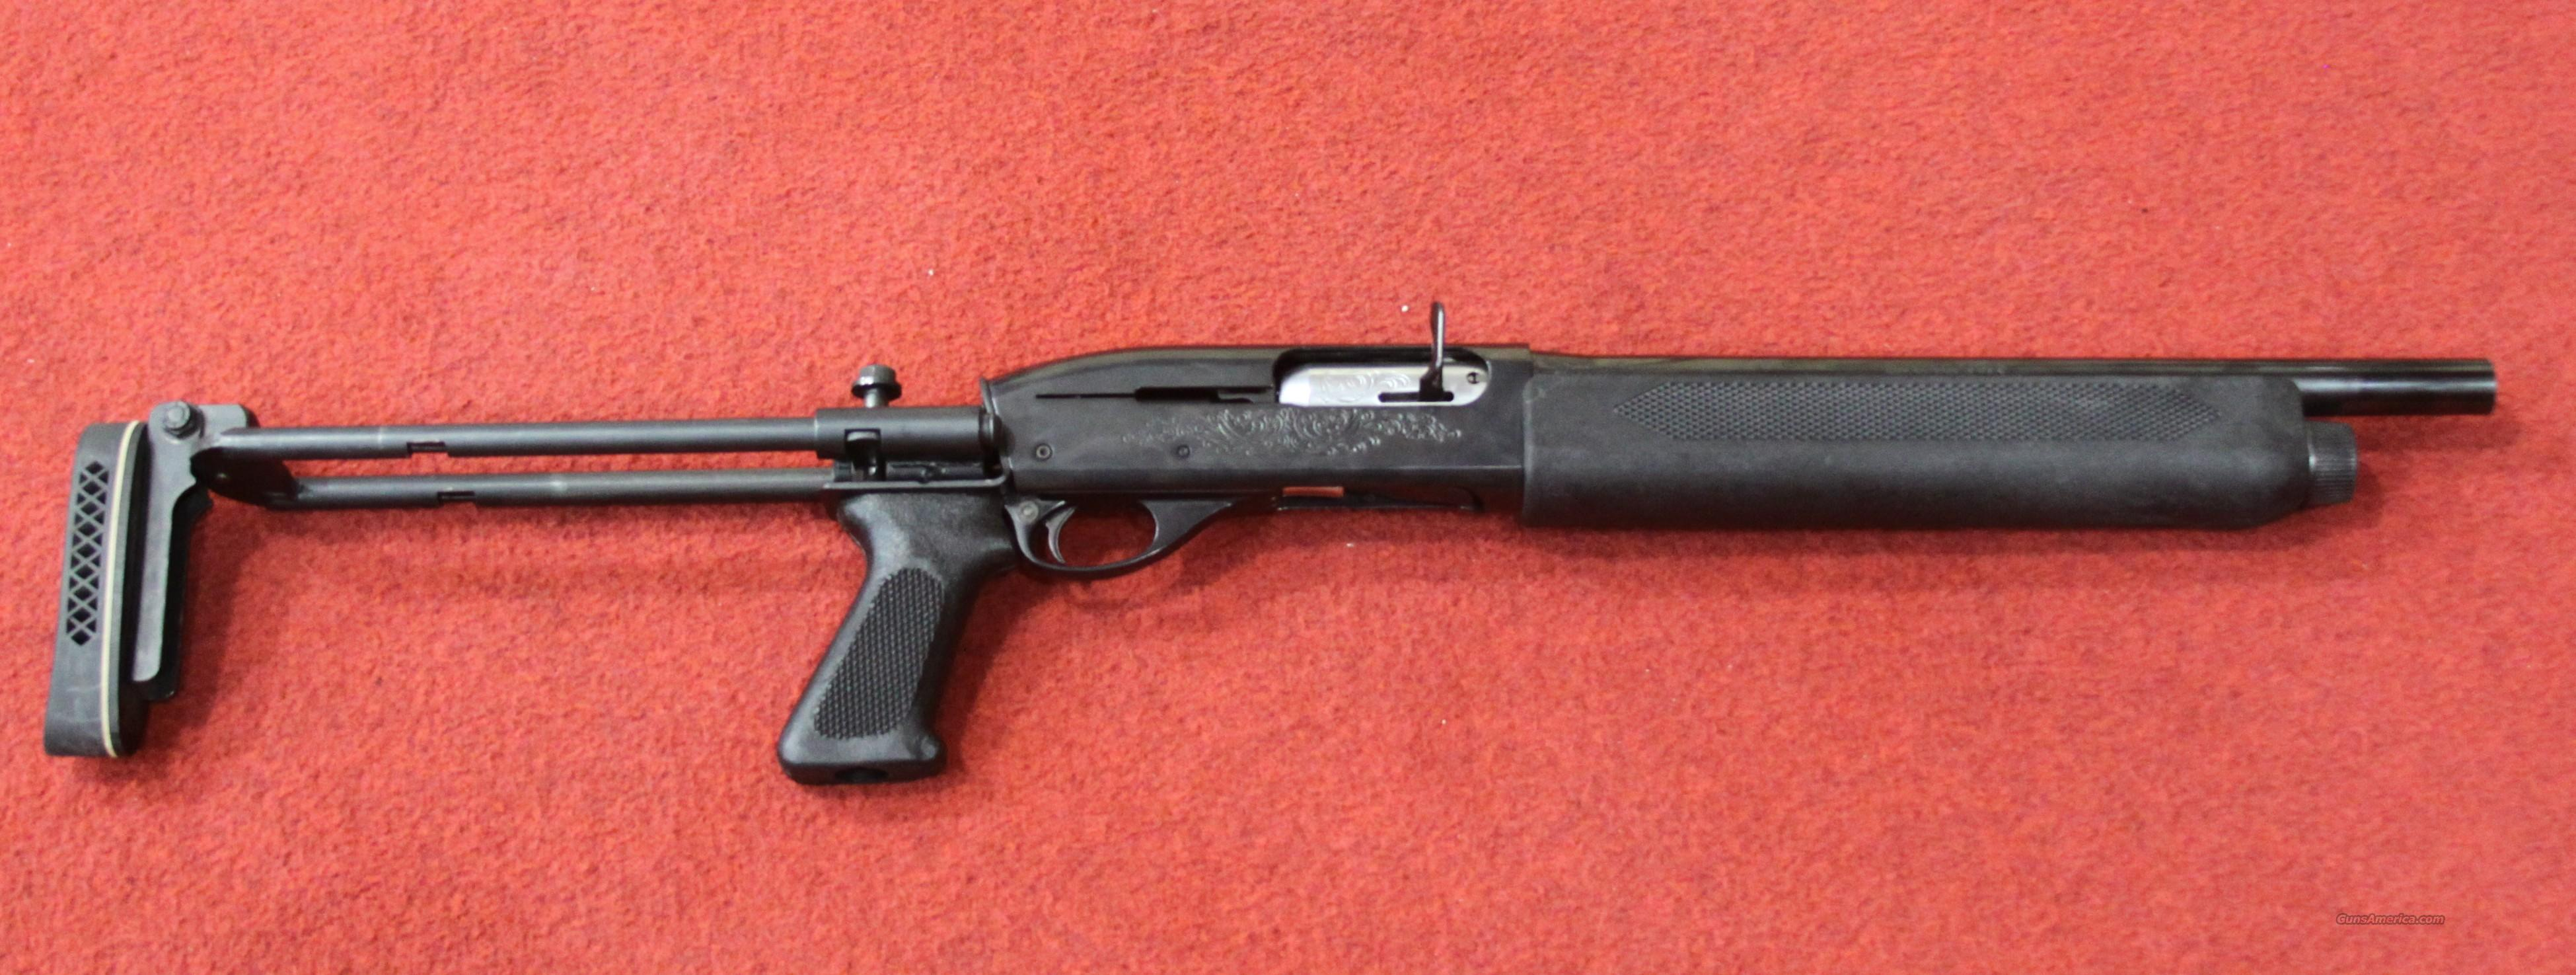 Renington 1100 Short Barrel Shotgun (SBS)  Guns > Shotguns > Class 3 Shotguns > Class 3 Any Other Weapon